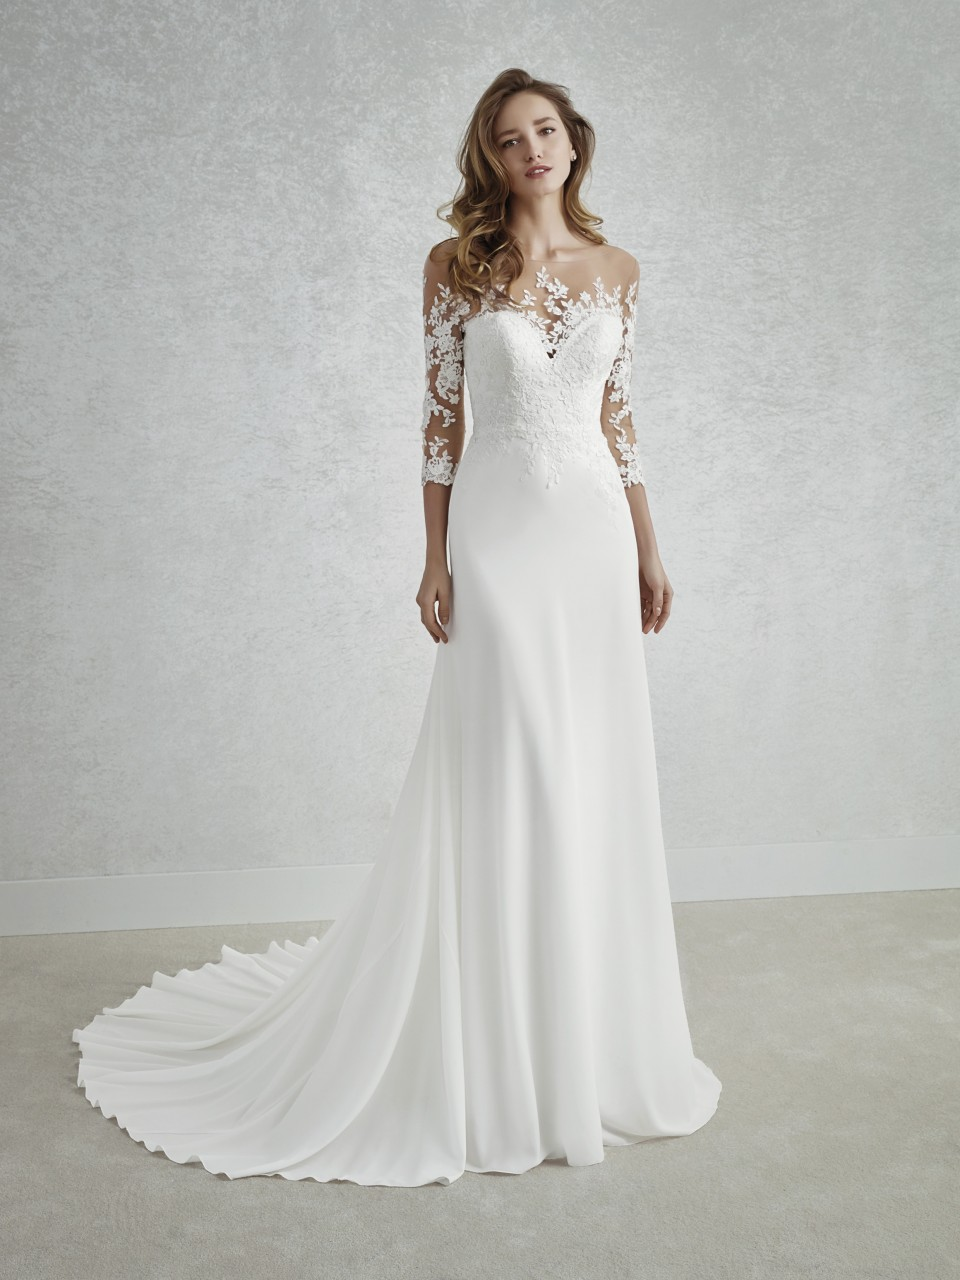 c91b4c2983a White One Collection from St Patrick by Pronovias Finura. Image 1